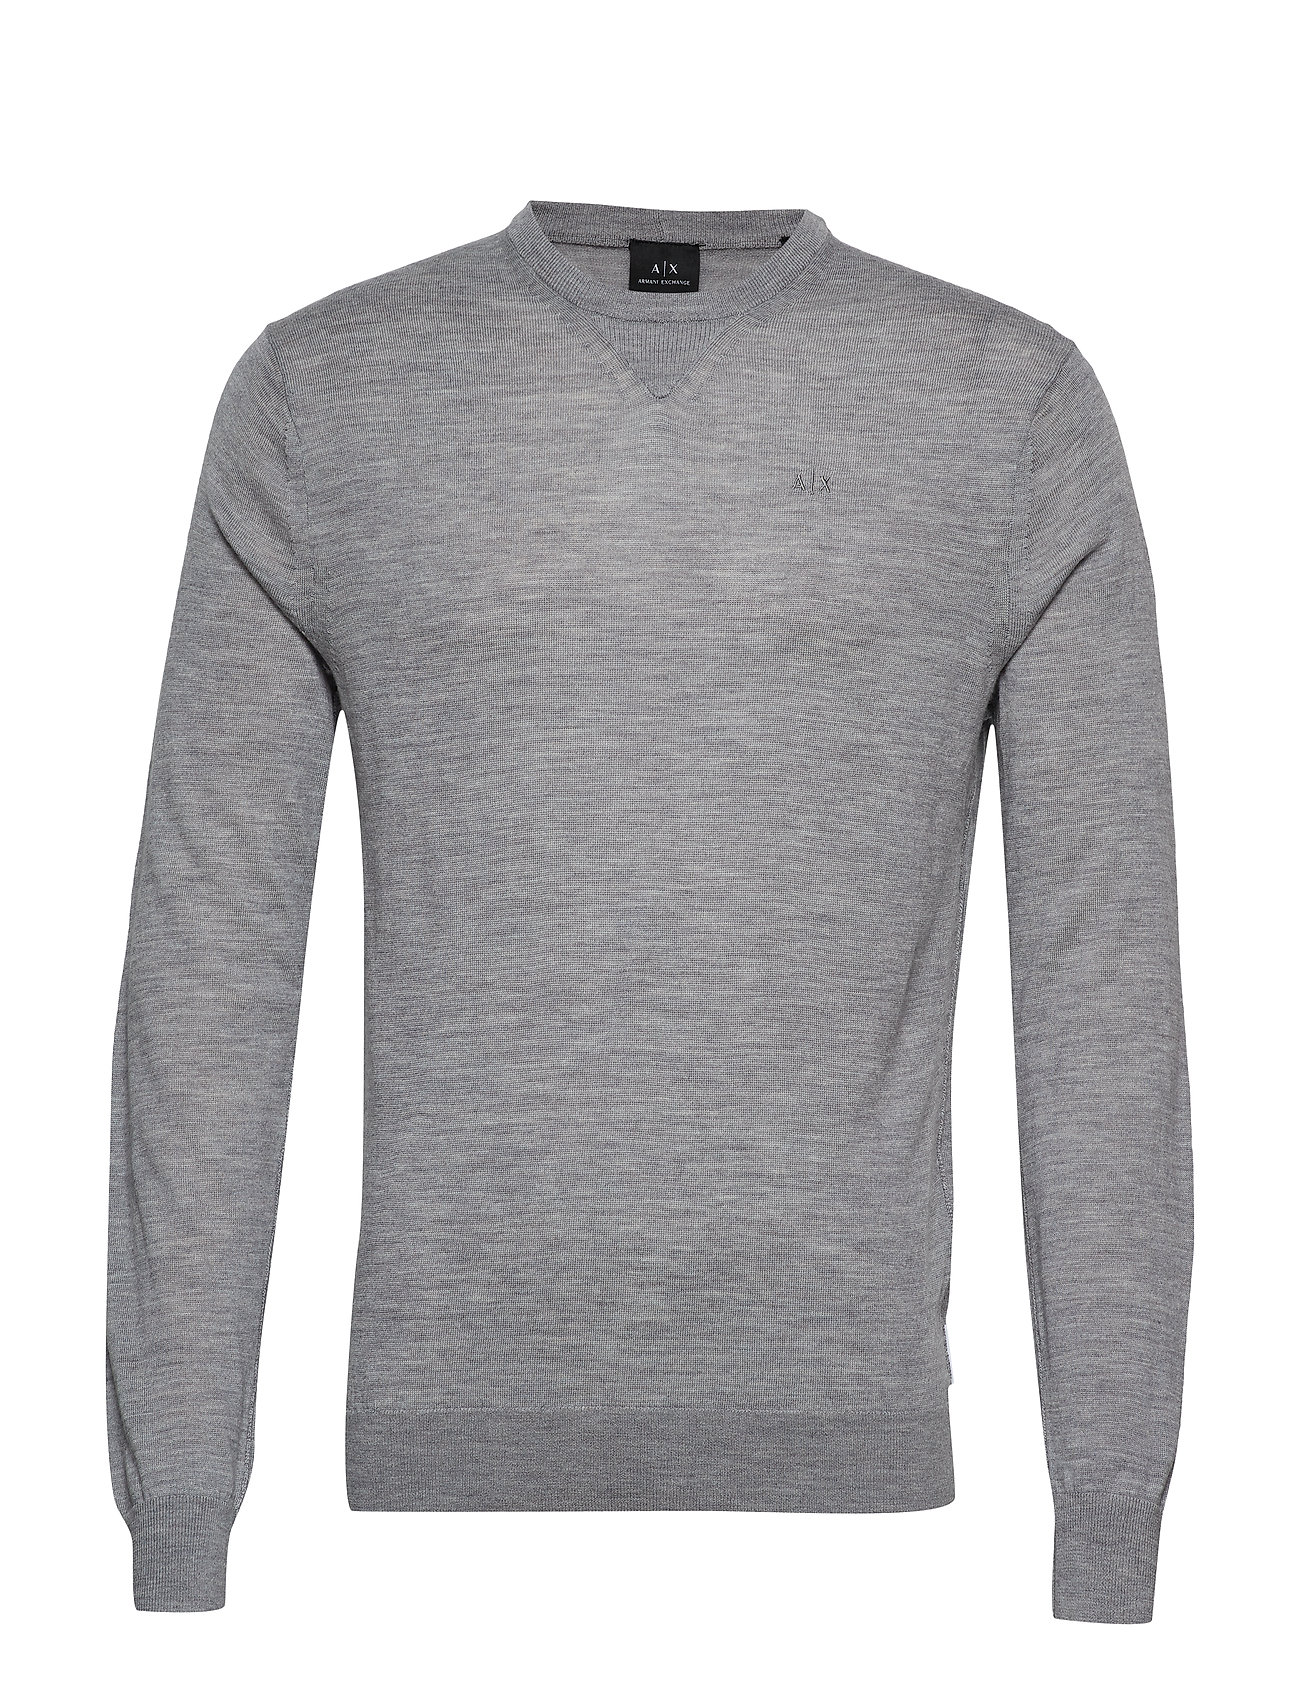 Armani Exchange AX MAN PULLOVER - BROS BC06 ALLOY HTR